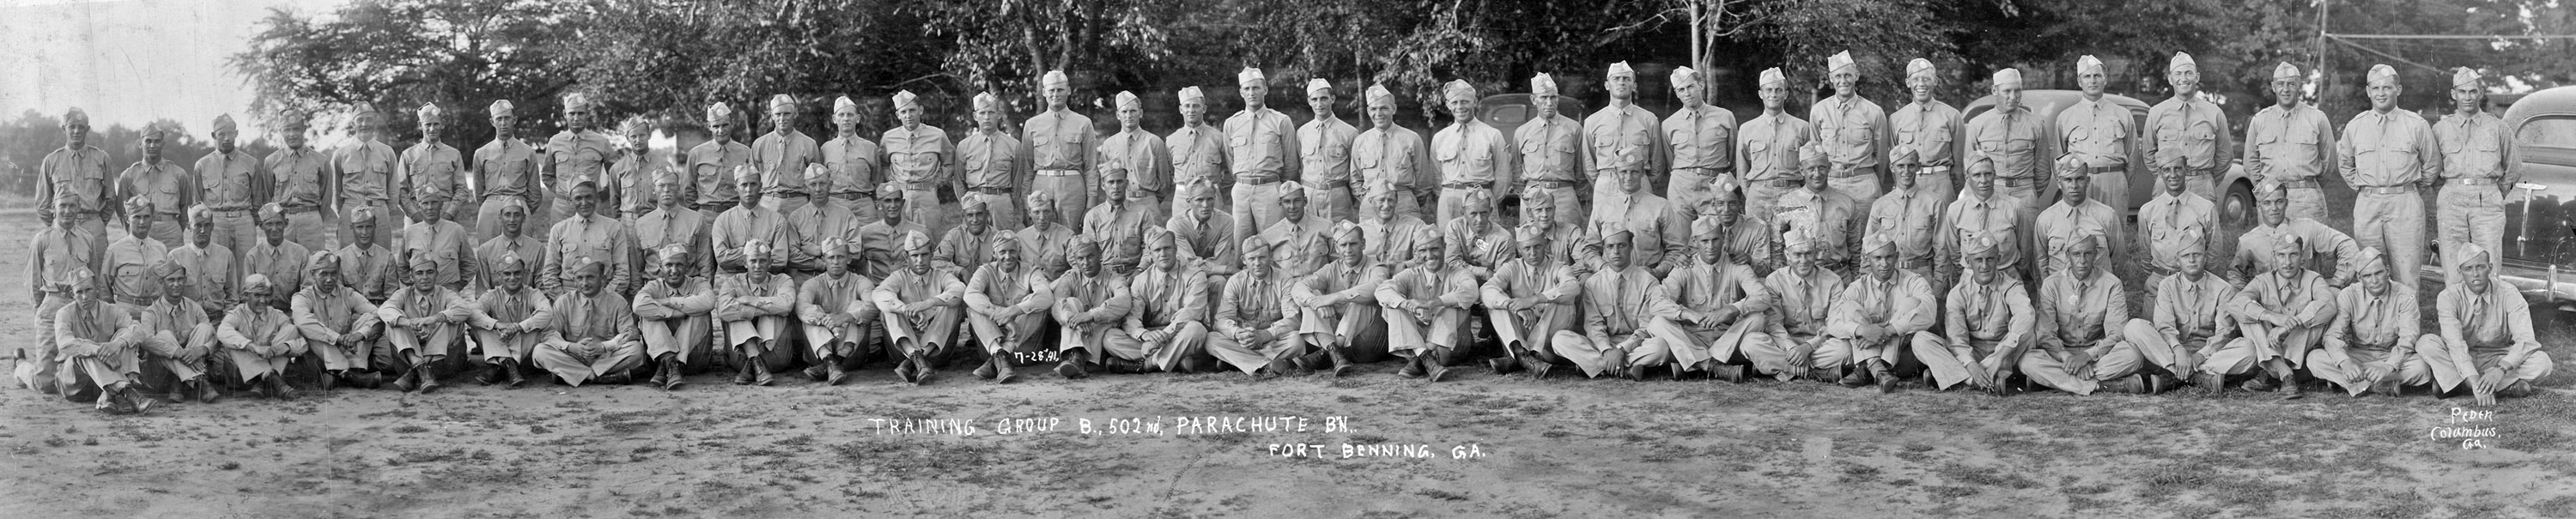 The 502nd Parachute Infantry Regiment(PIR) during WW II